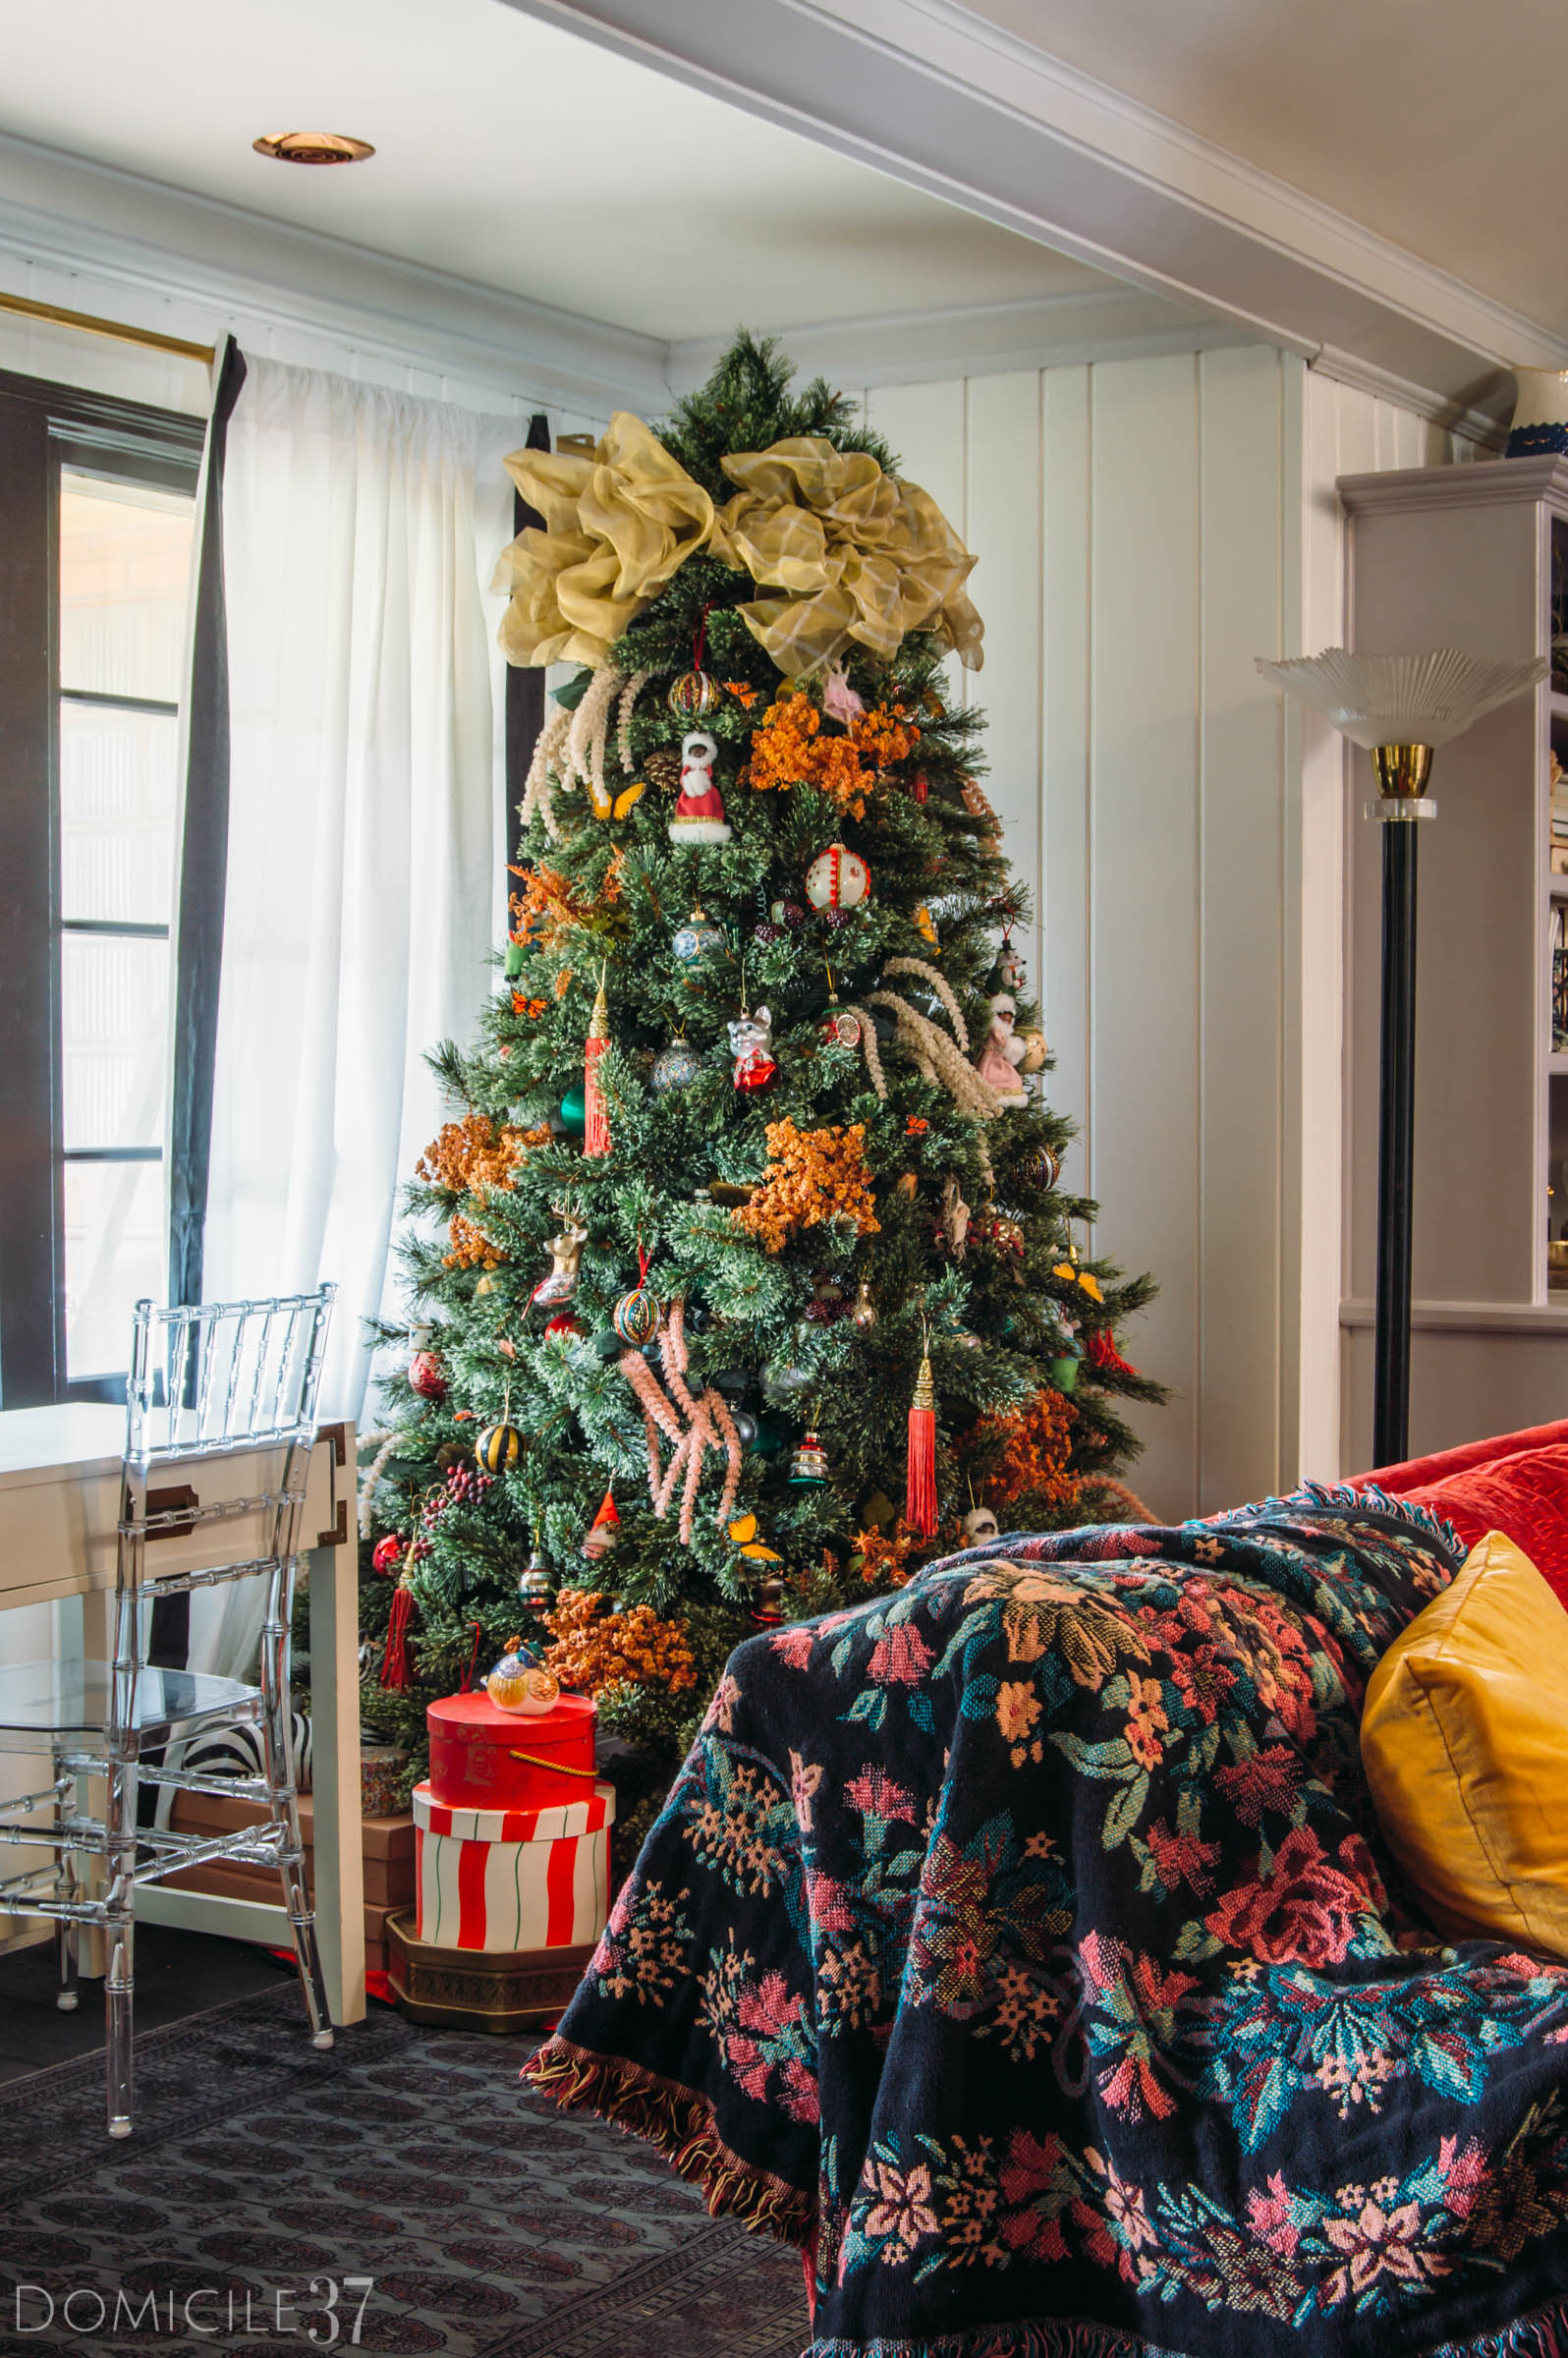 My Home Style Christmas Tree 2018, Haute Bohemian Christmas,